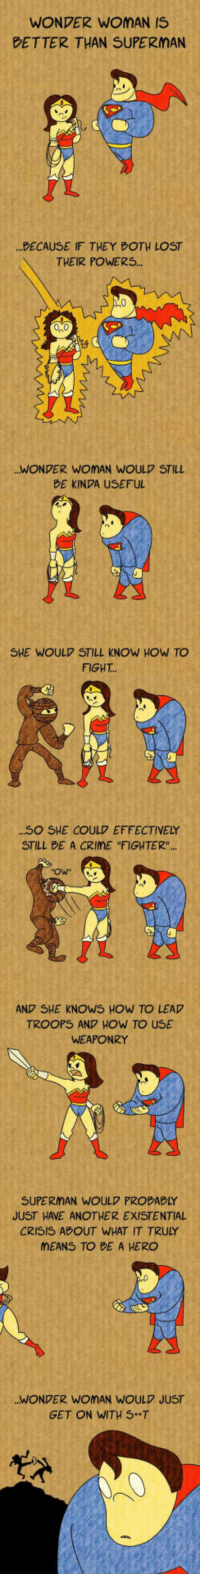 "Crime, She Knows, and Superman: WONDER WOMAN IS  BETTER THAN SUPERMAN  DECAUSE IF THEY POTH LOST  THEIR POWERS.  WONDER WOMAN WOULD STIL  BE KINDA USEFUL  SHE WOULD STILL KNOW HOW TO  FIGHT...  SO SHE COULD EFFECTIVELY  STILL BE A CRIME ""FIGHTER  Ow  AND SHE KNOWS HOW TO LEAD  TROOPS AND HOW TO USE  WEAPONRY  SUPERMAN WOULD PROBABLY  JUST HAVE ANOTHER EXISTENTIAL  CRISIS ADOUT WHAT IT TRULY  MEANS TO BE A HERO  WONDER WOMAN WOULD JUST  GET ON WITH ST <p>Wonder Woman And Super Man Compared.</p>"